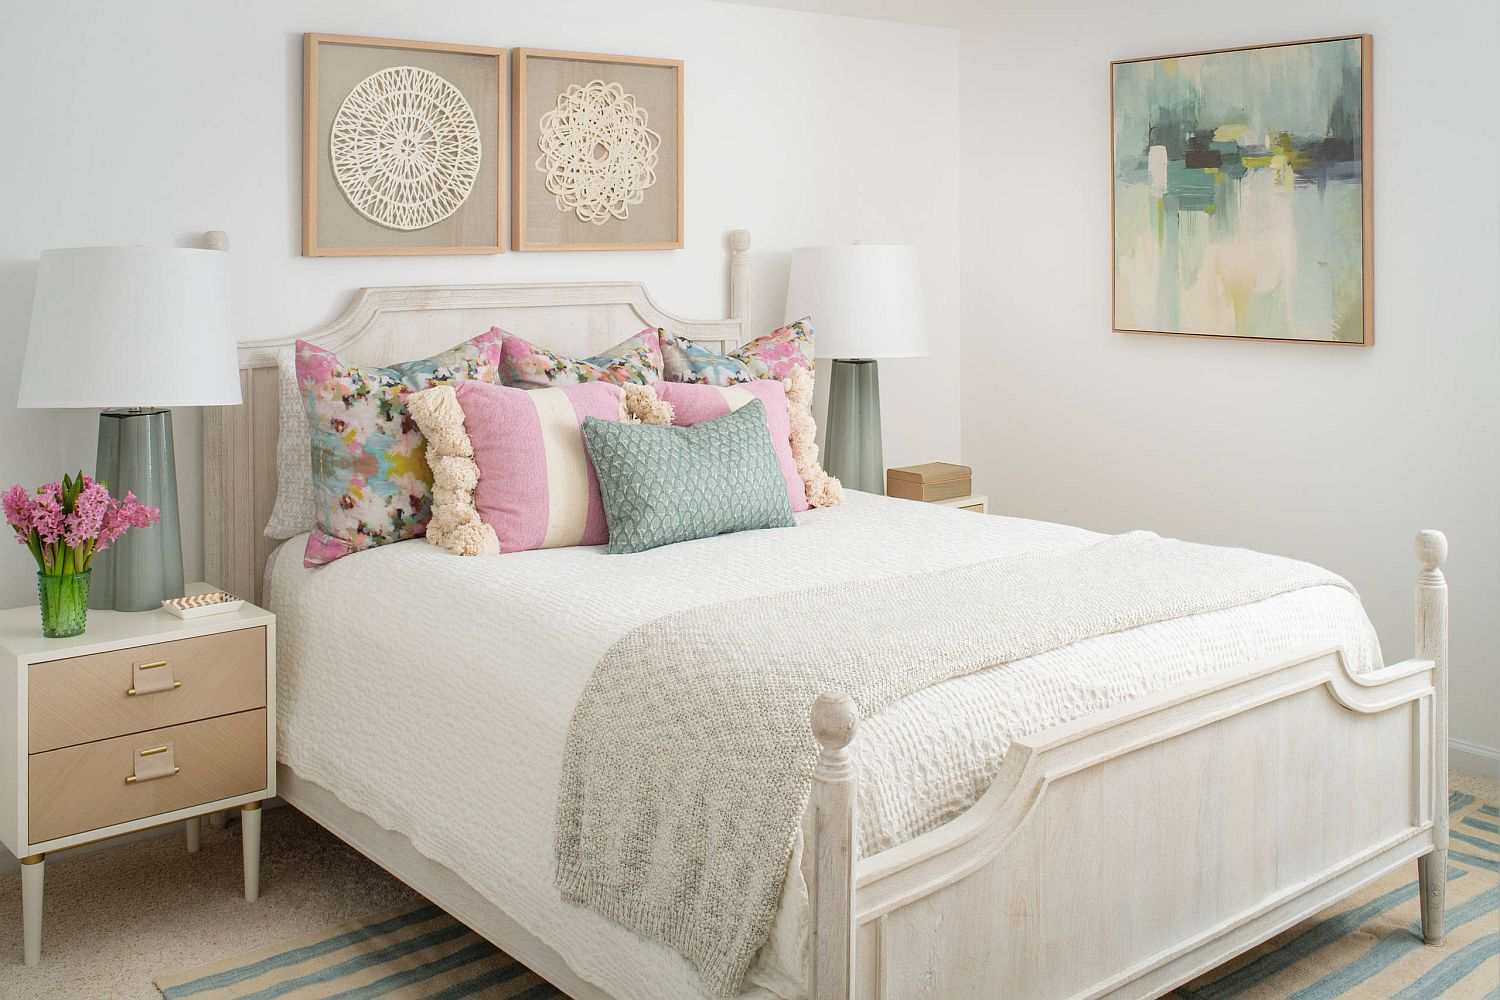 Gentel pastel blue and pink accents for the relaxing bedroom in white with coastal chic style